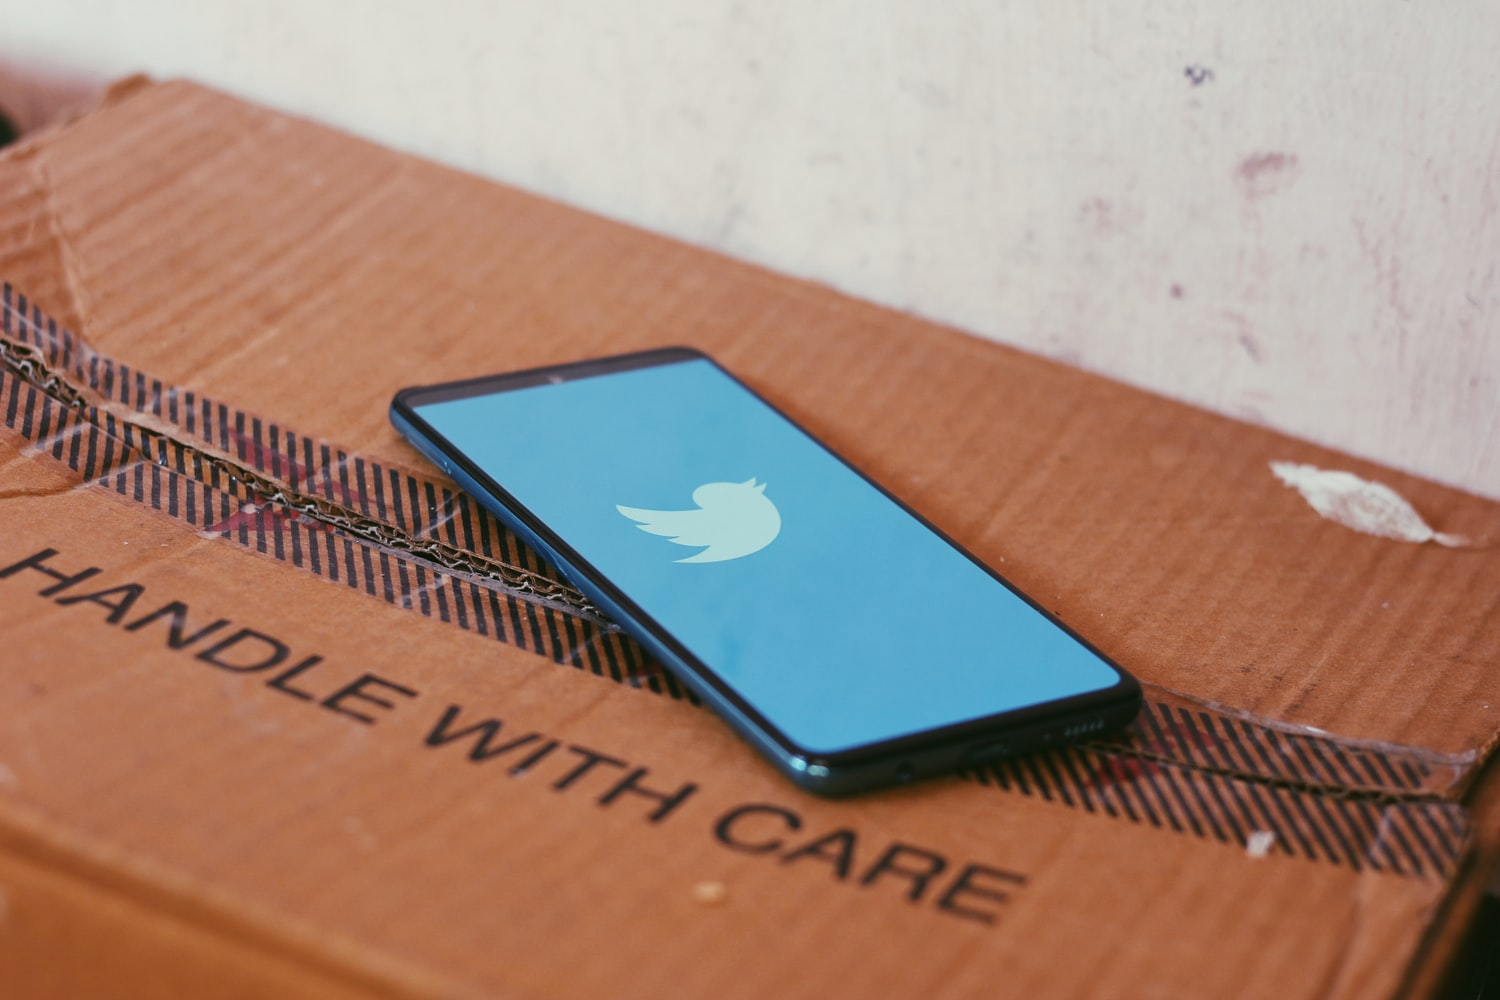 Phone showing Twitter label on a box saying 'Handle with Care'